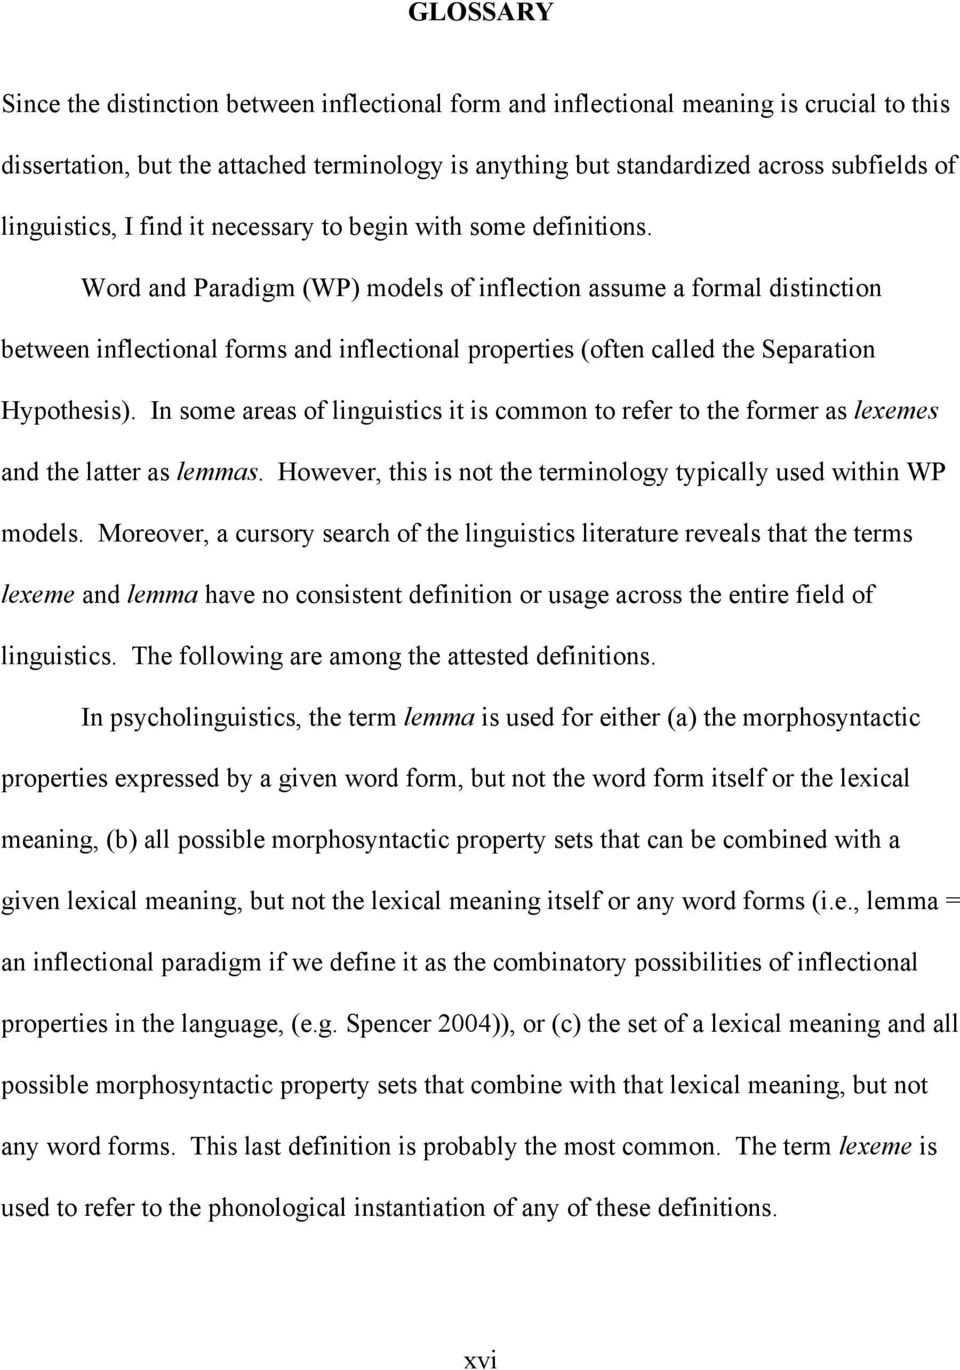 Word and Paradigm (WP) models of inflection assume a formal distinction between inflectional forms and inflectional properties (often called the Separation Hypothesis).